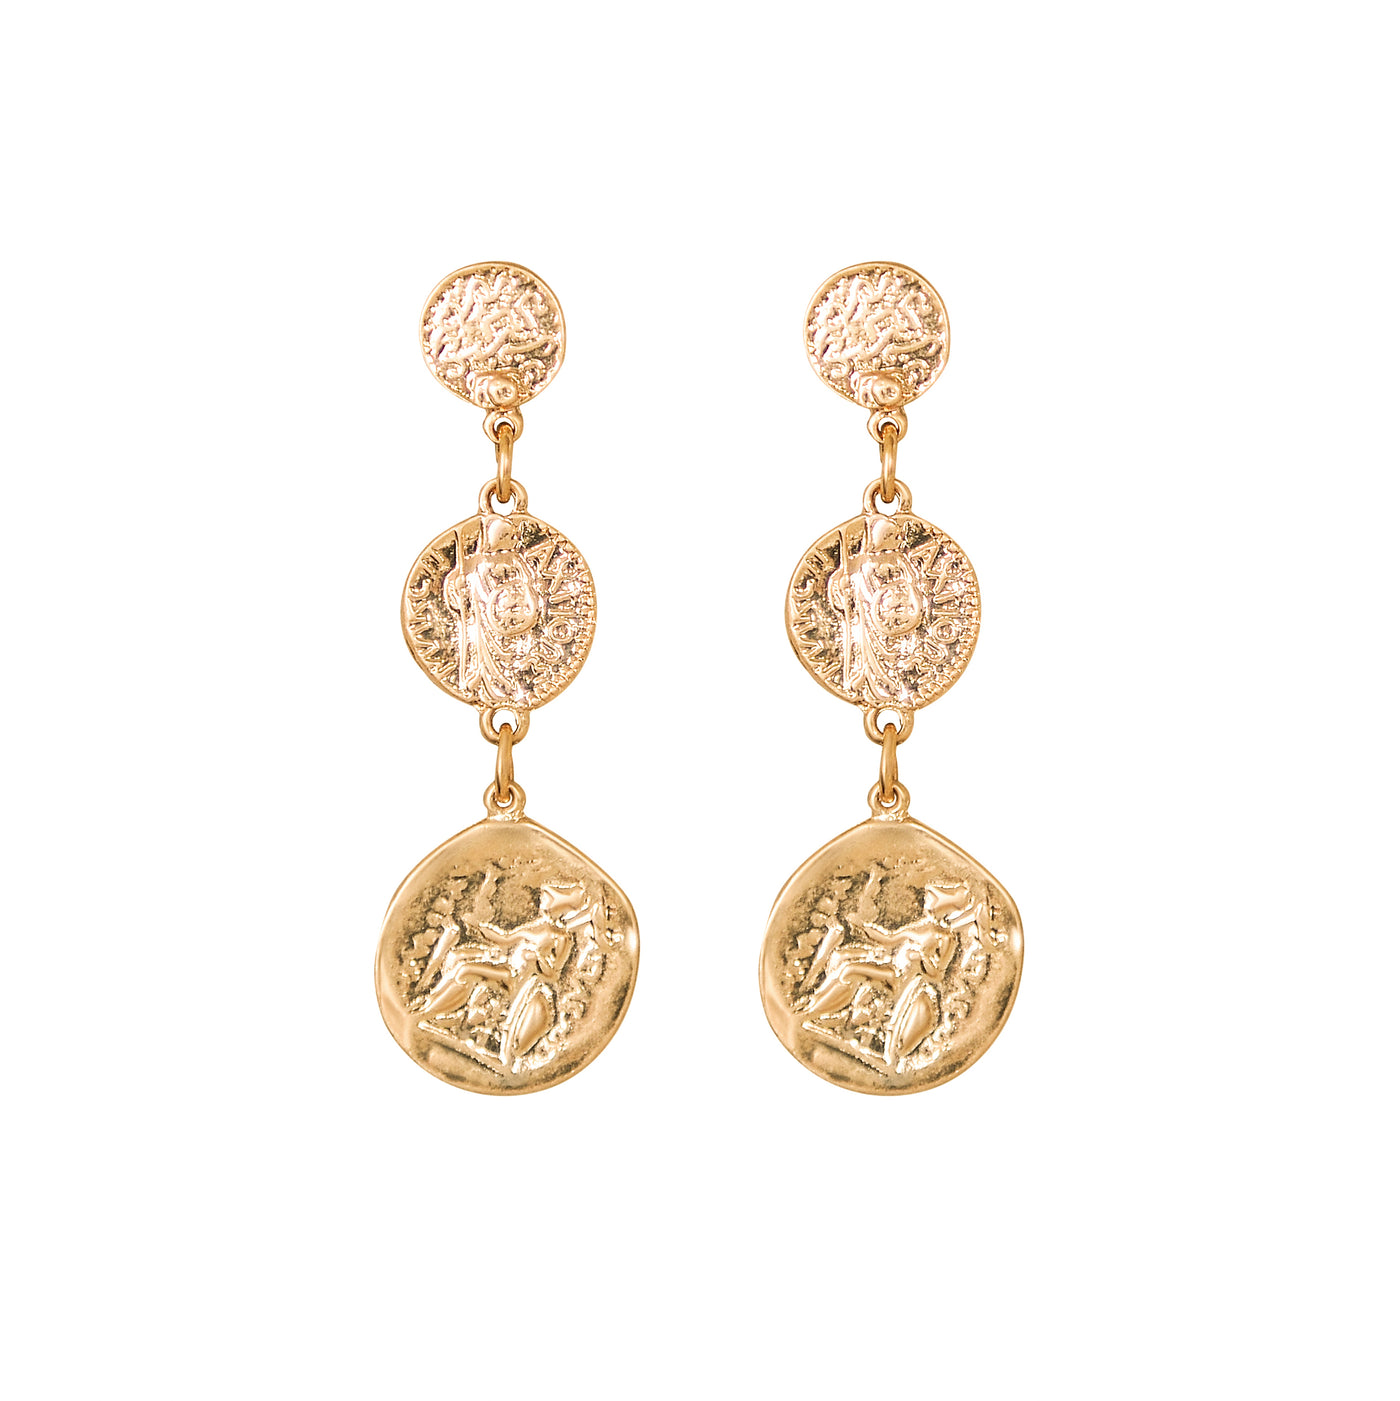 Egyptian Coin Drop Earrings - Marble Hive